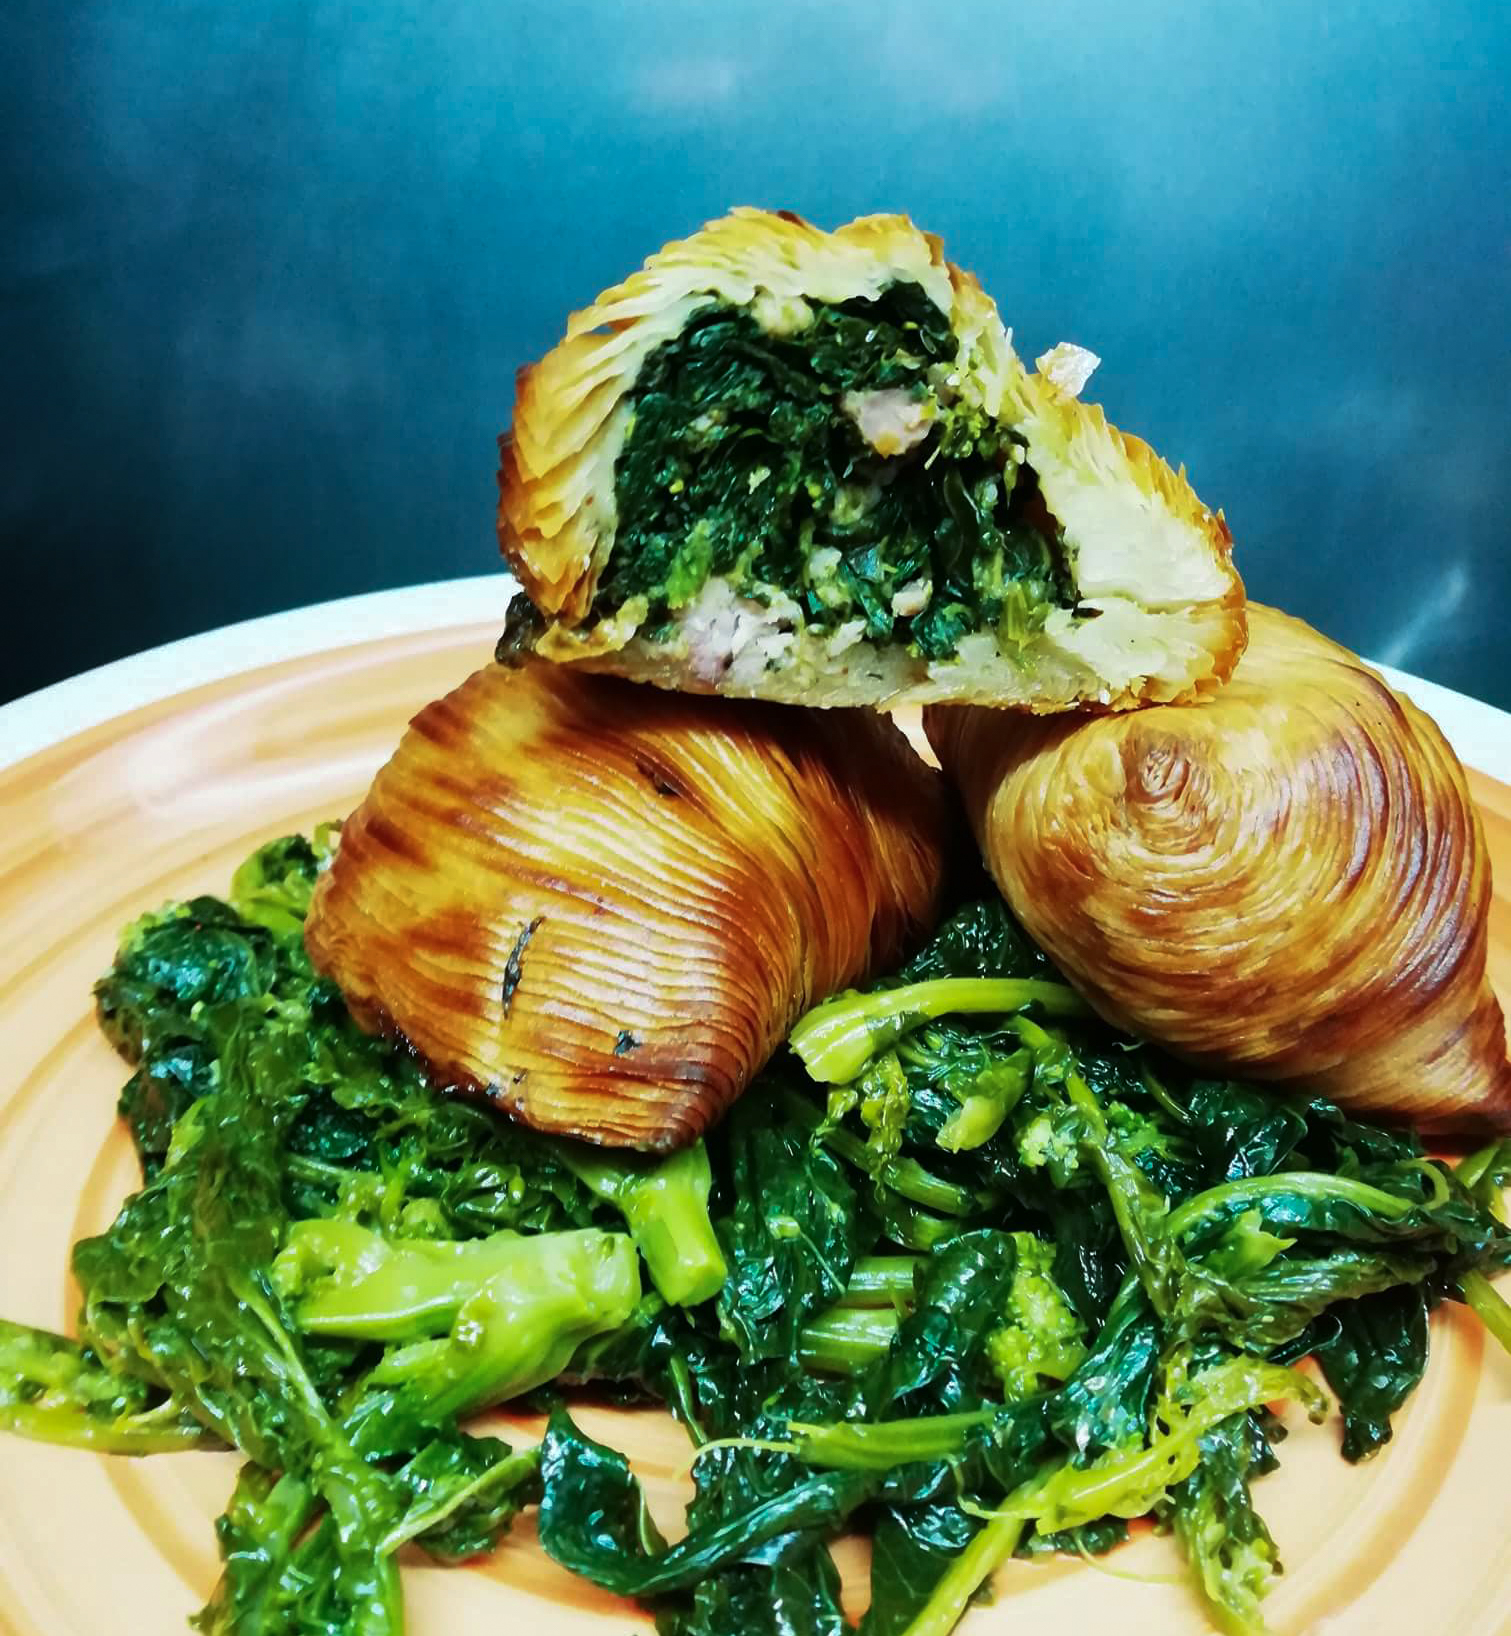 Roccasecca's Broccoletto feast on December 8 with very original recipes